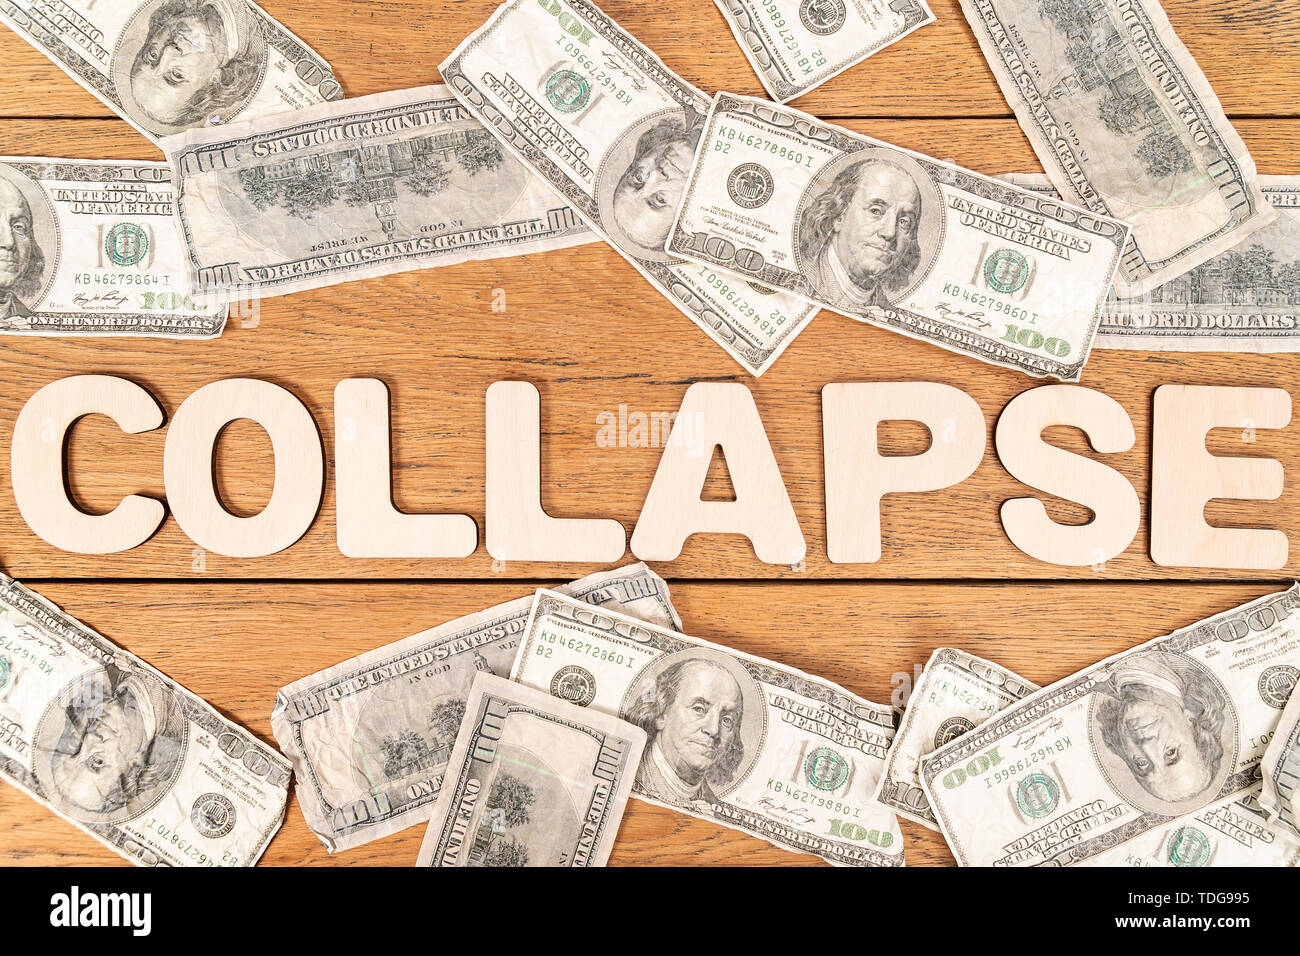 word collapse laid out of wooden letters on an old wooden table next to crumpled dollars - Stock Image